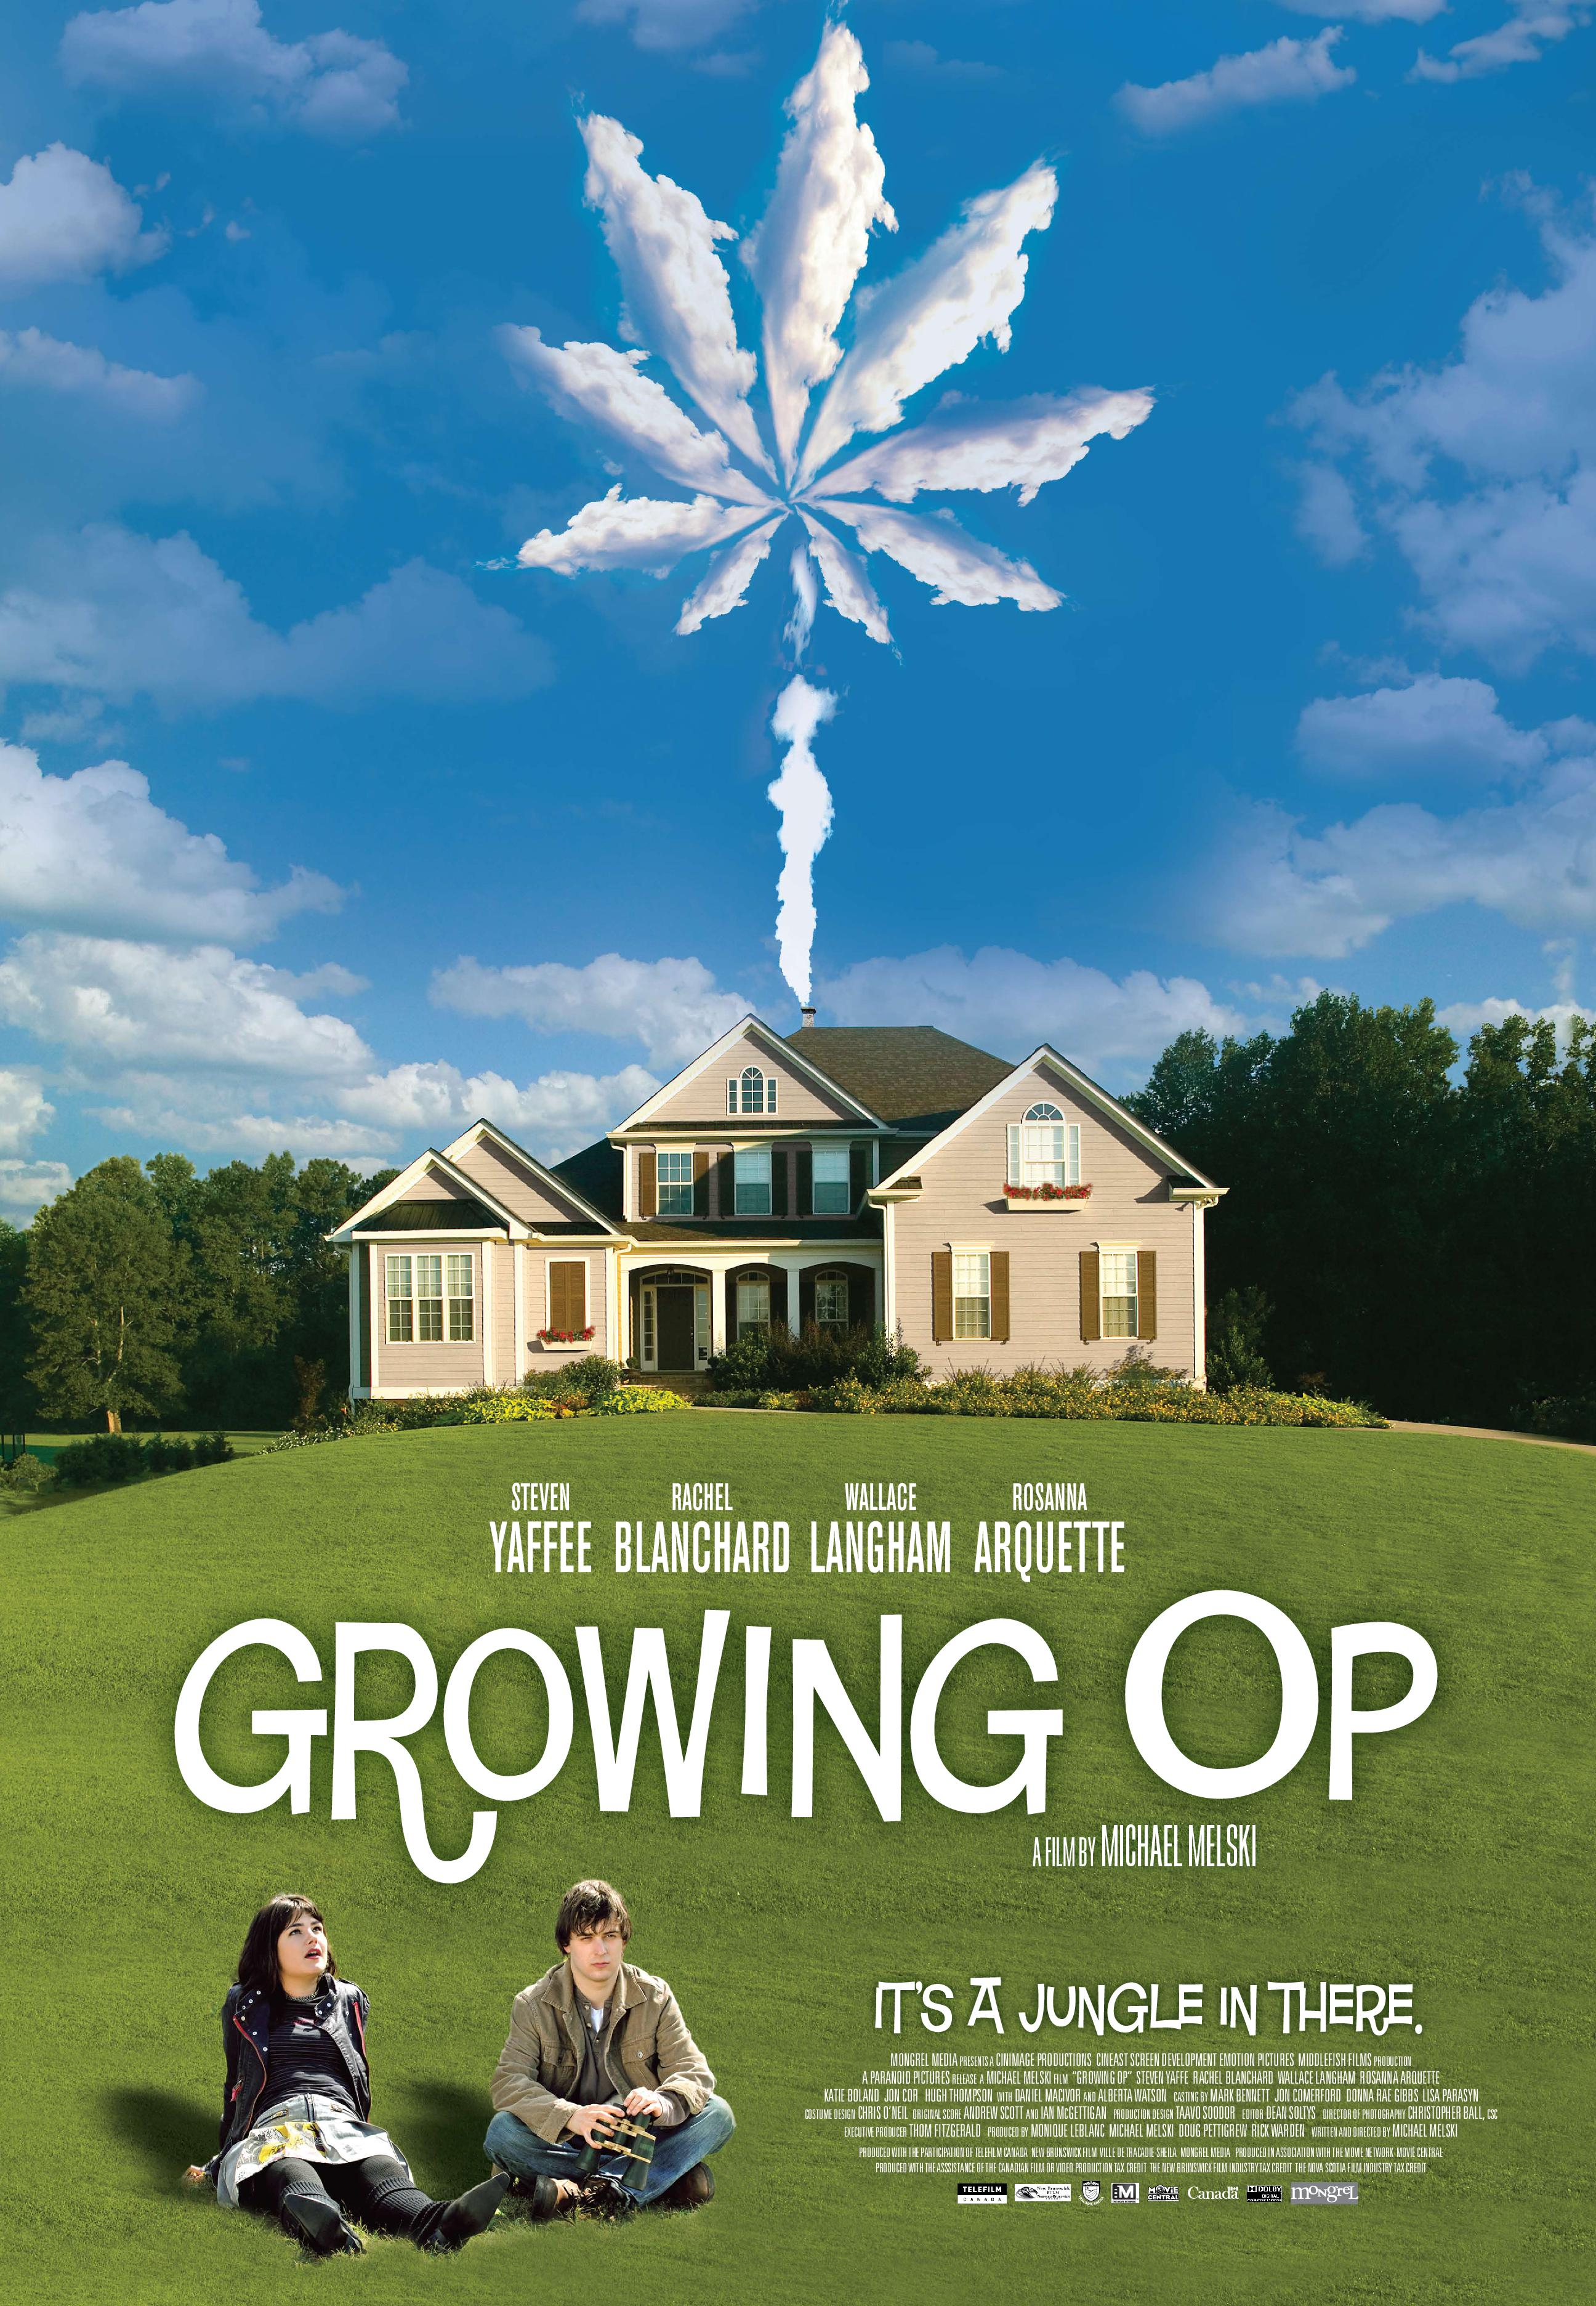 Download growing op 2008 brrip xvid mp3-xvid softarchive.